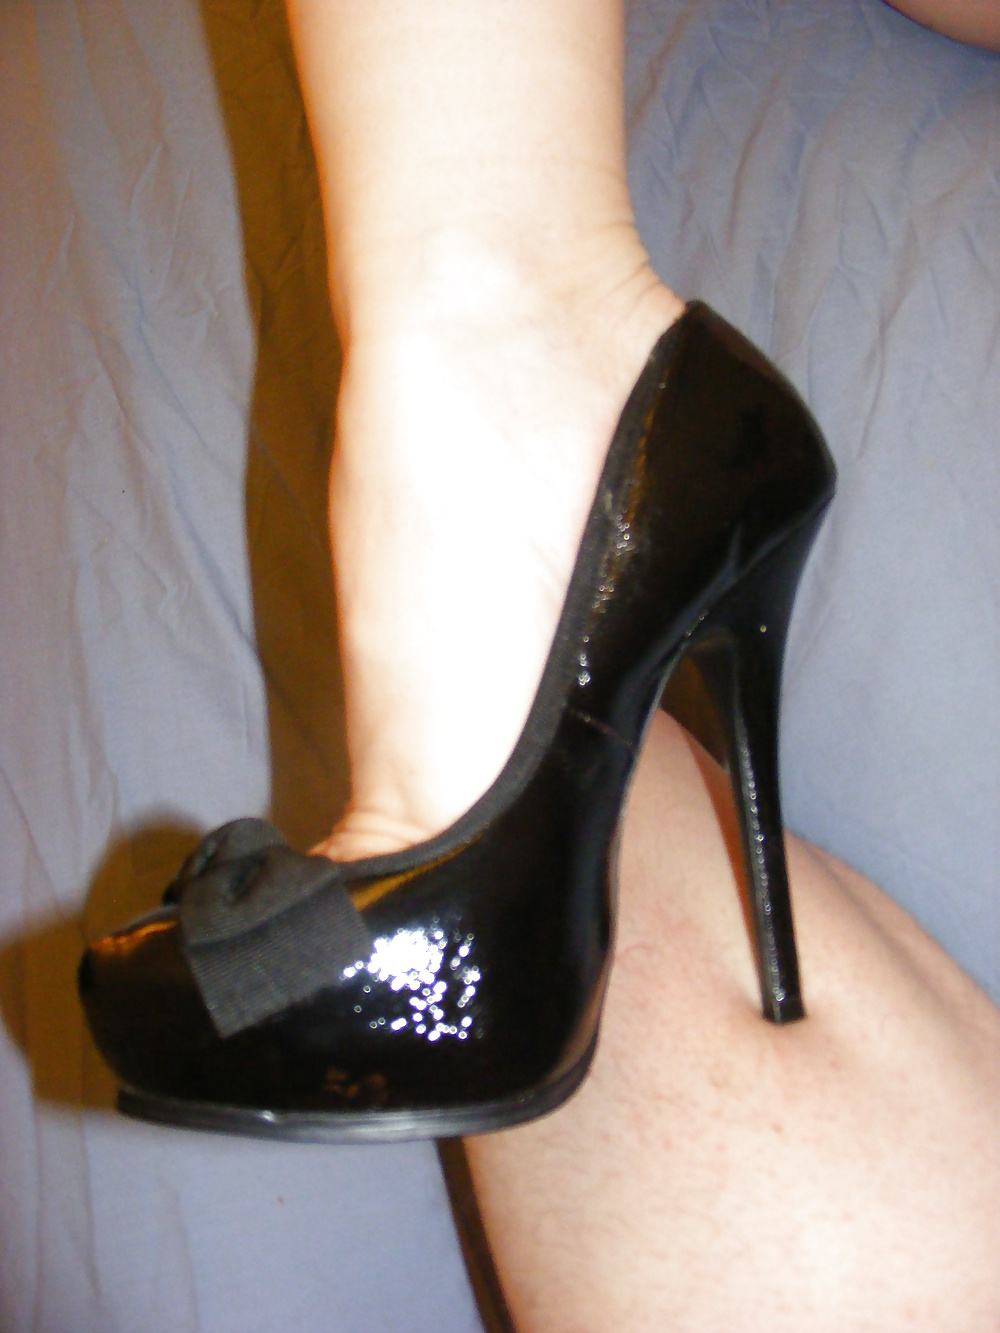 Wife wearing heels and lingerie